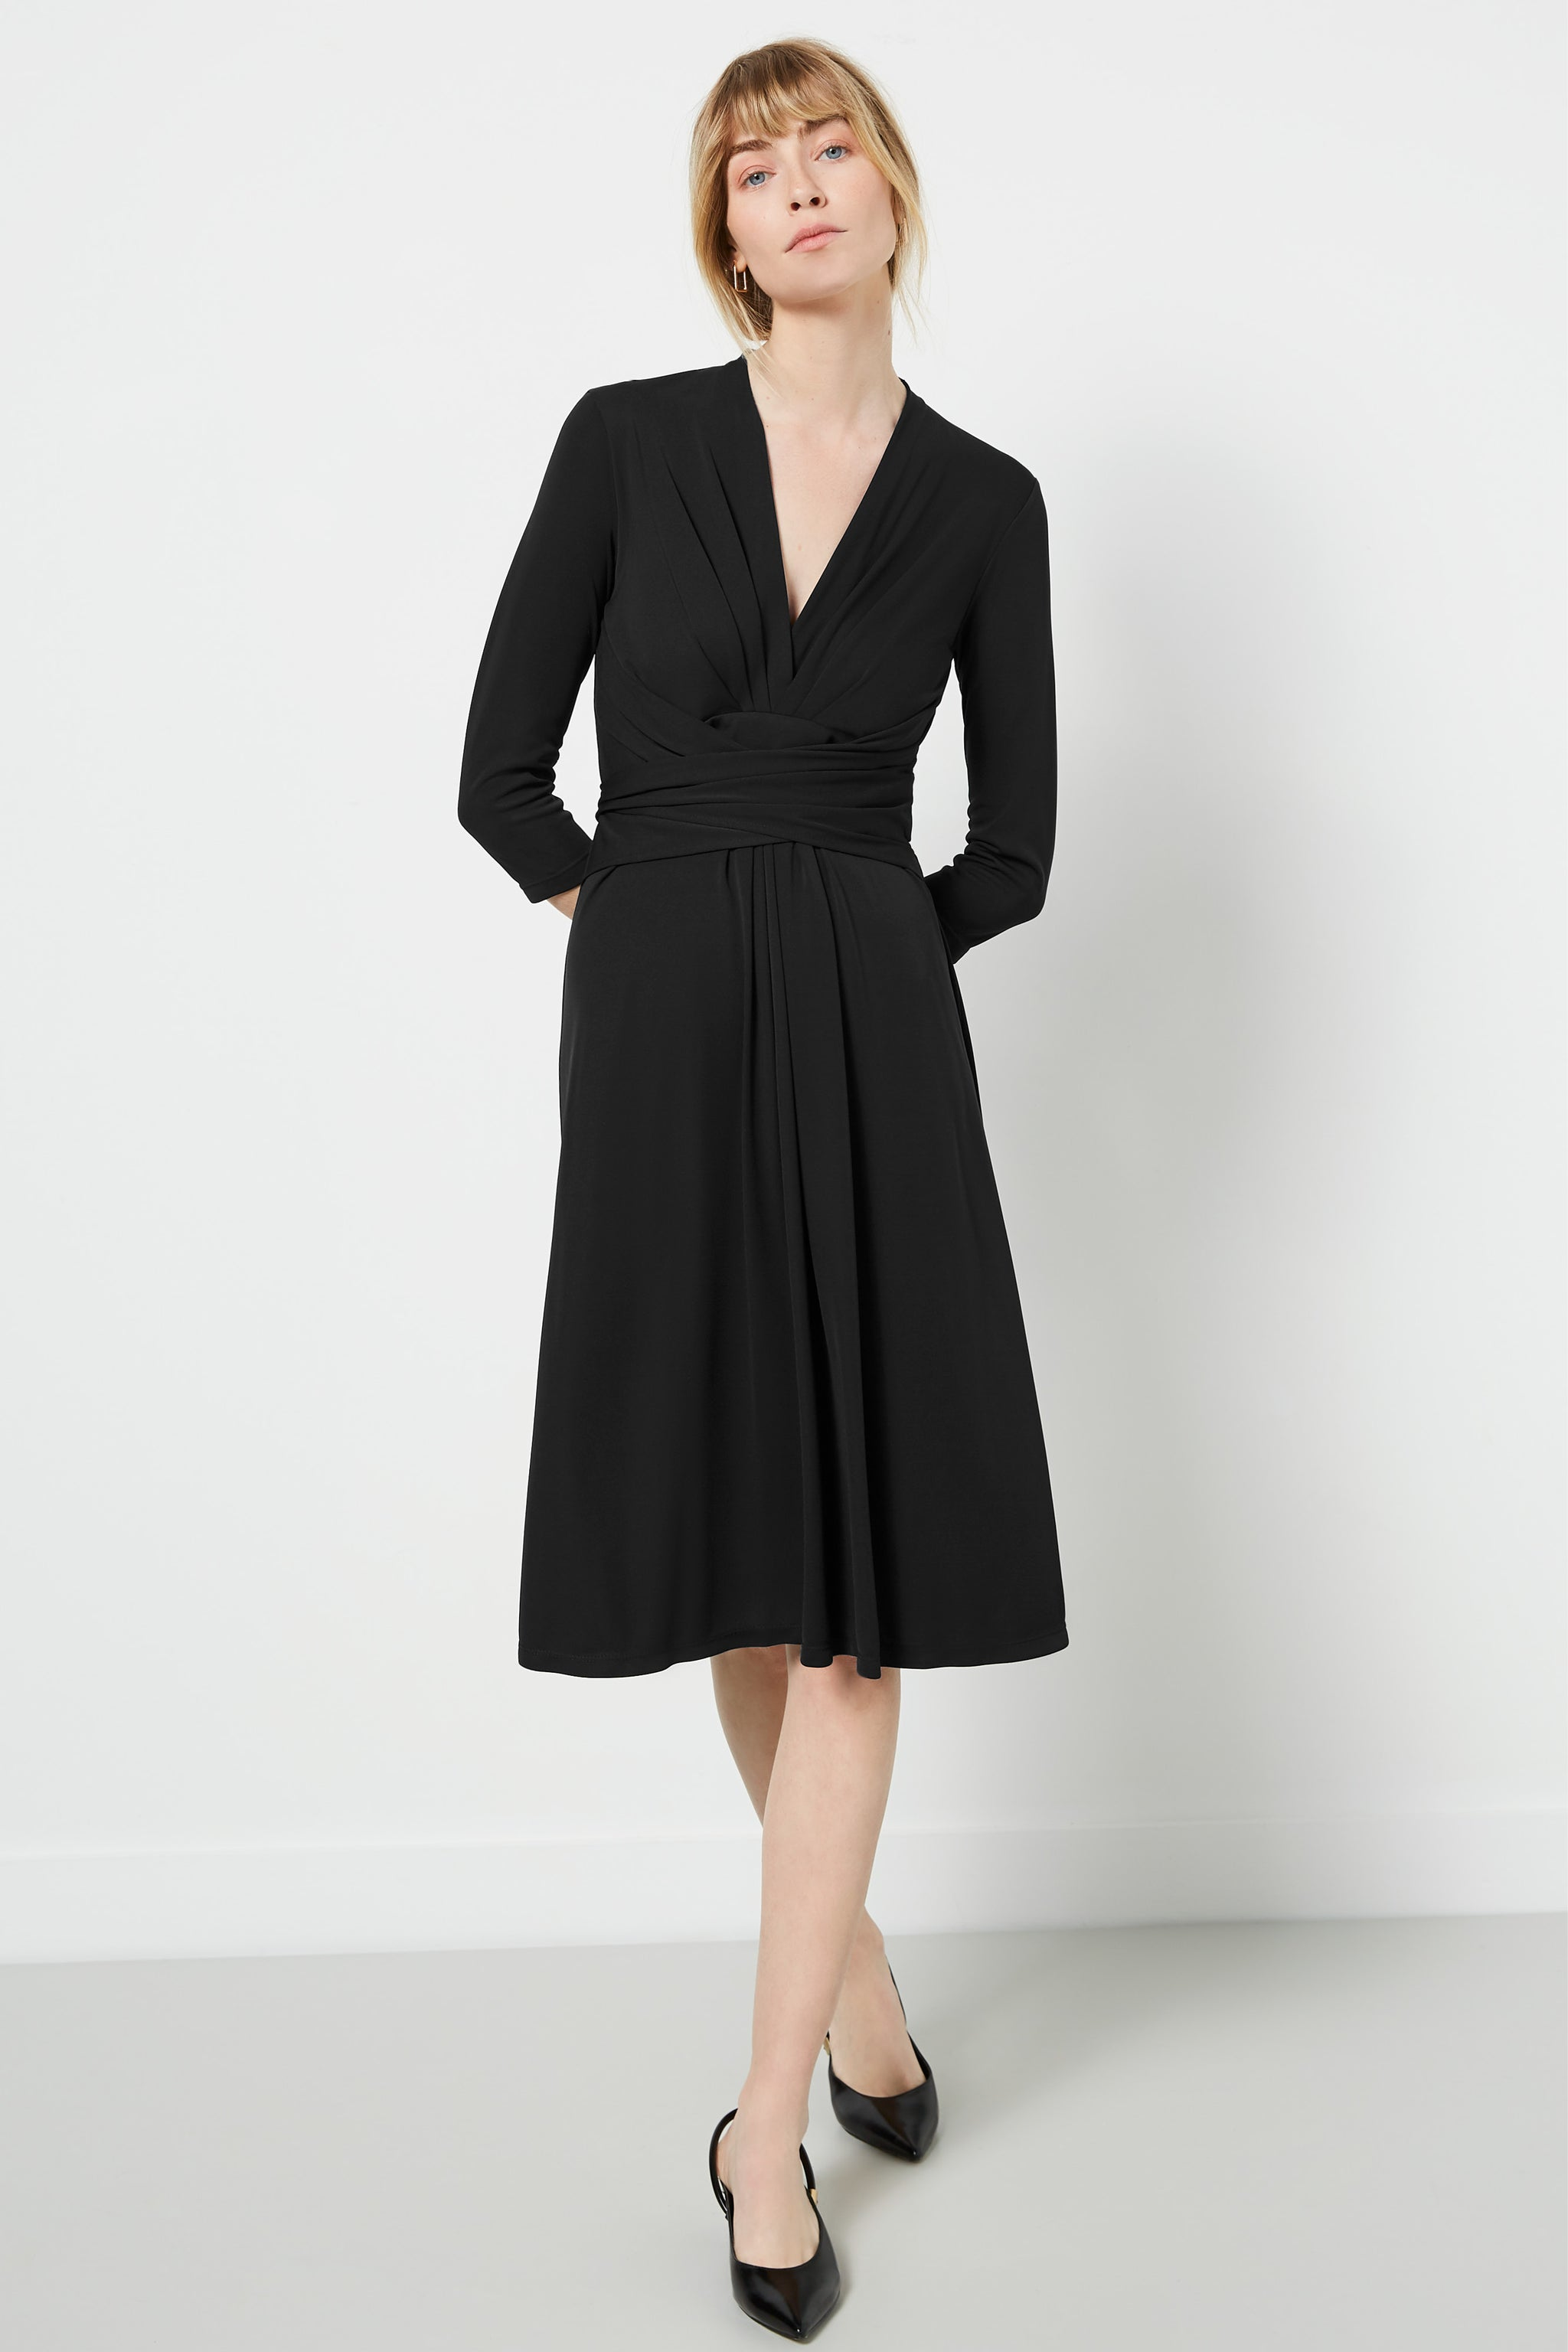 Radley Black Dress